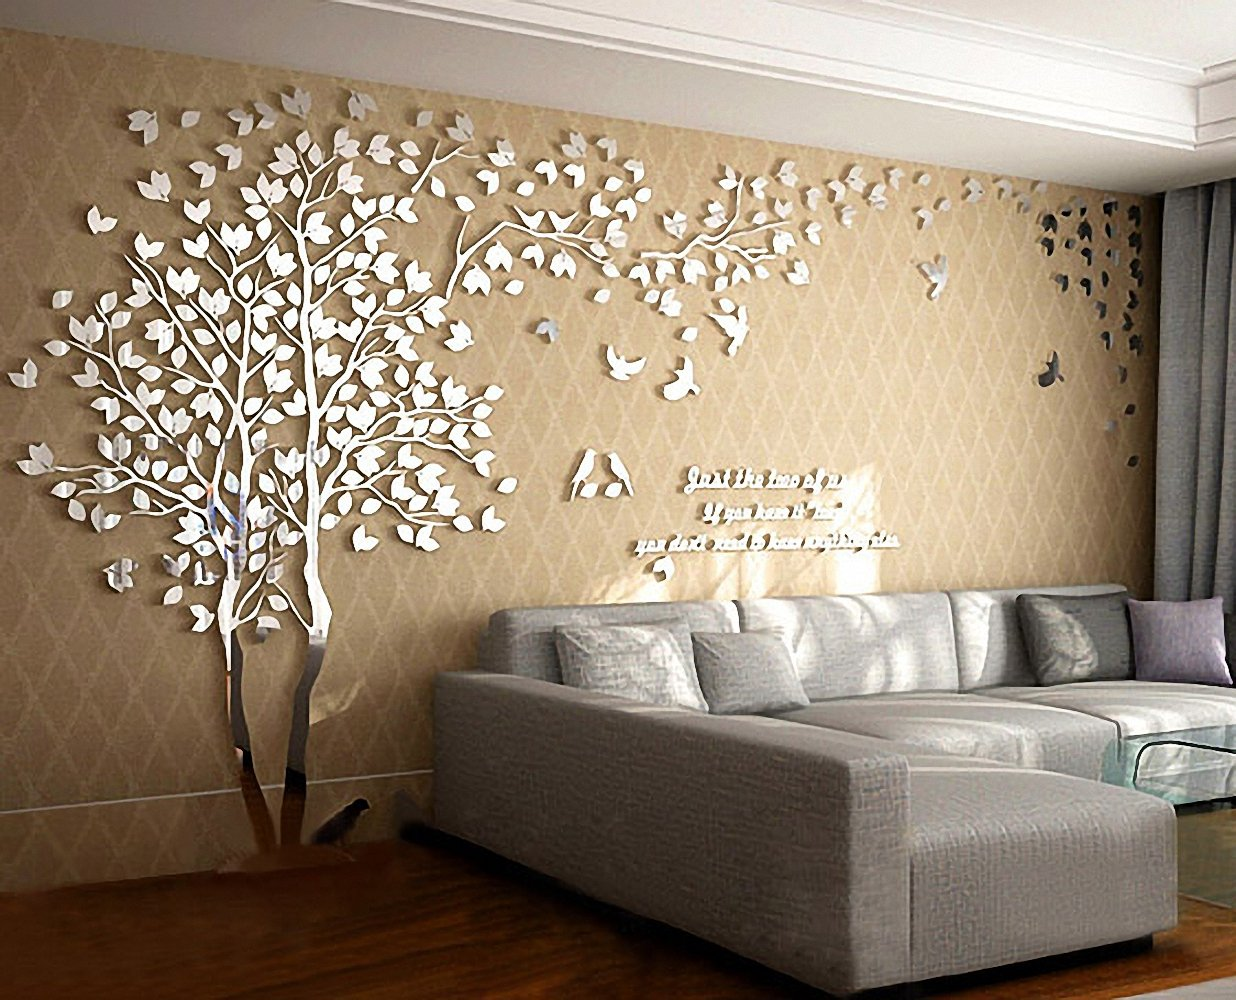 N.SunForest 3D Crystal Acrylic Couple Tree Wall Stickers Silver Self-Adhesive DIY Wall Murals Home Decor Art - X-Large by N.SunForest (Image #6)